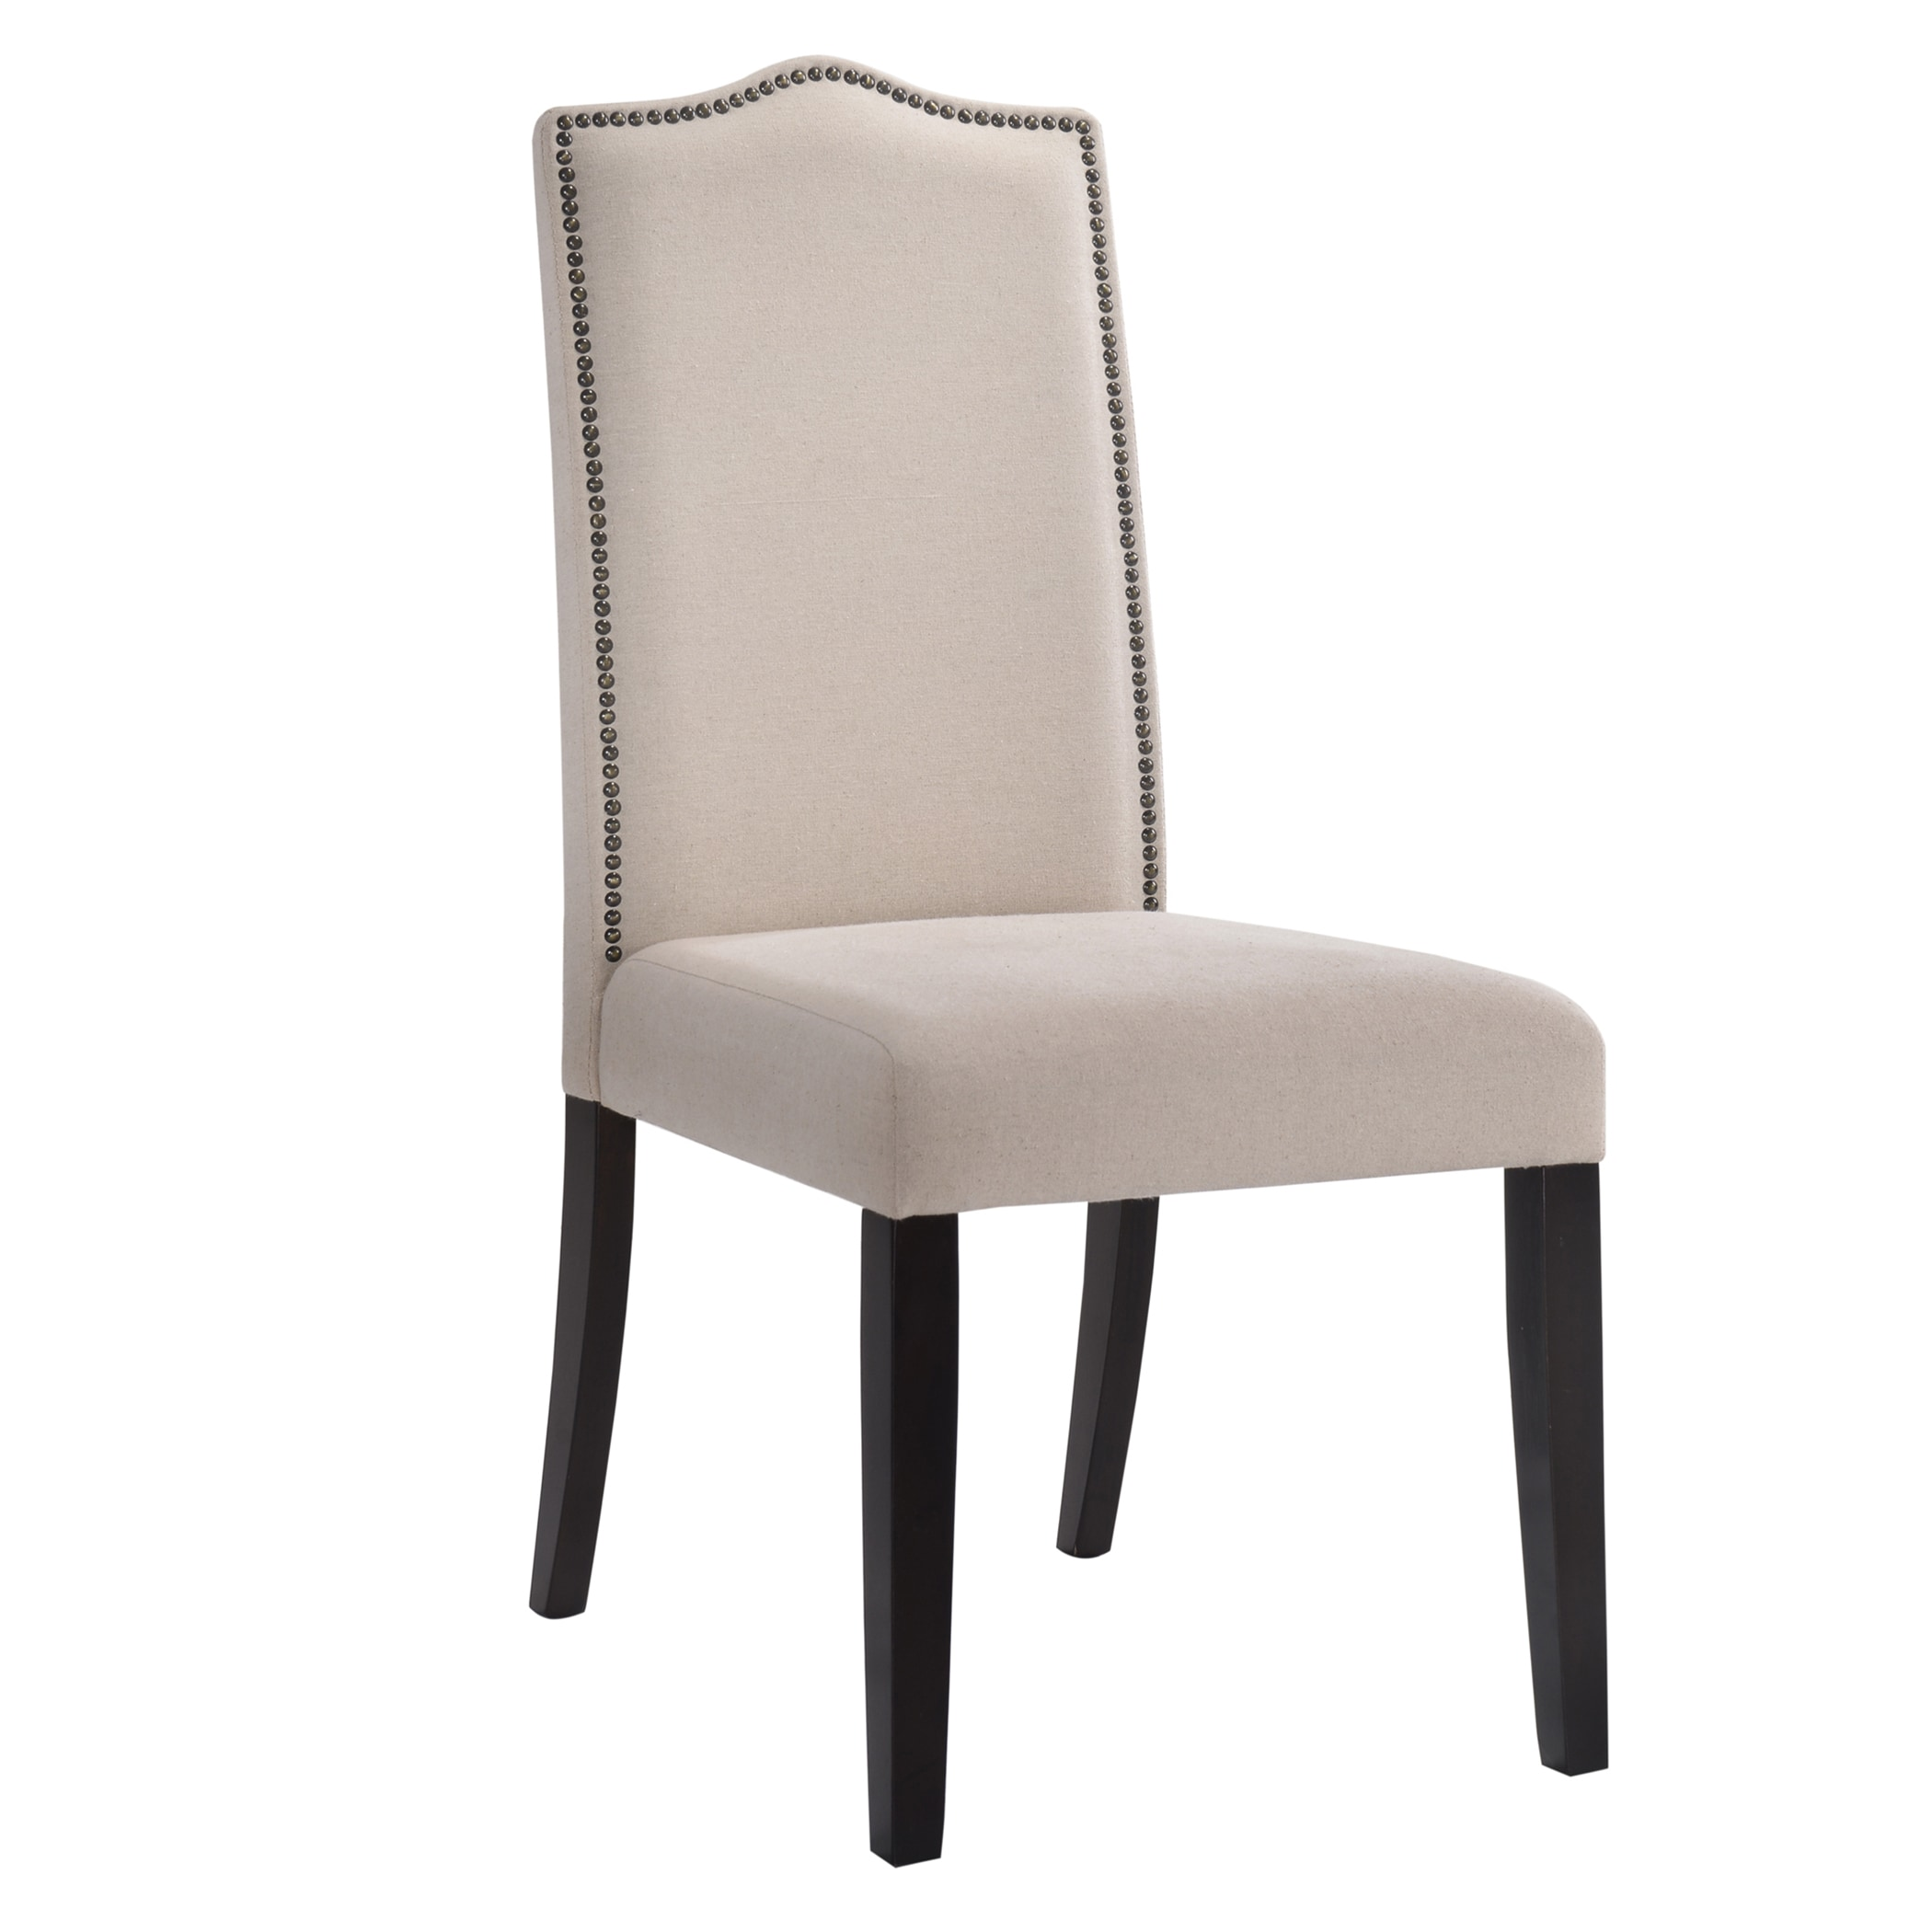 Shop Marco Nailhead Parson Chair - On Sale - Free Shipping Today - Overstock.com - 10868625  sc 1 st  Overstock.com & Shop Marco Nailhead Parson Chair - On Sale - Free Shipping Today ...